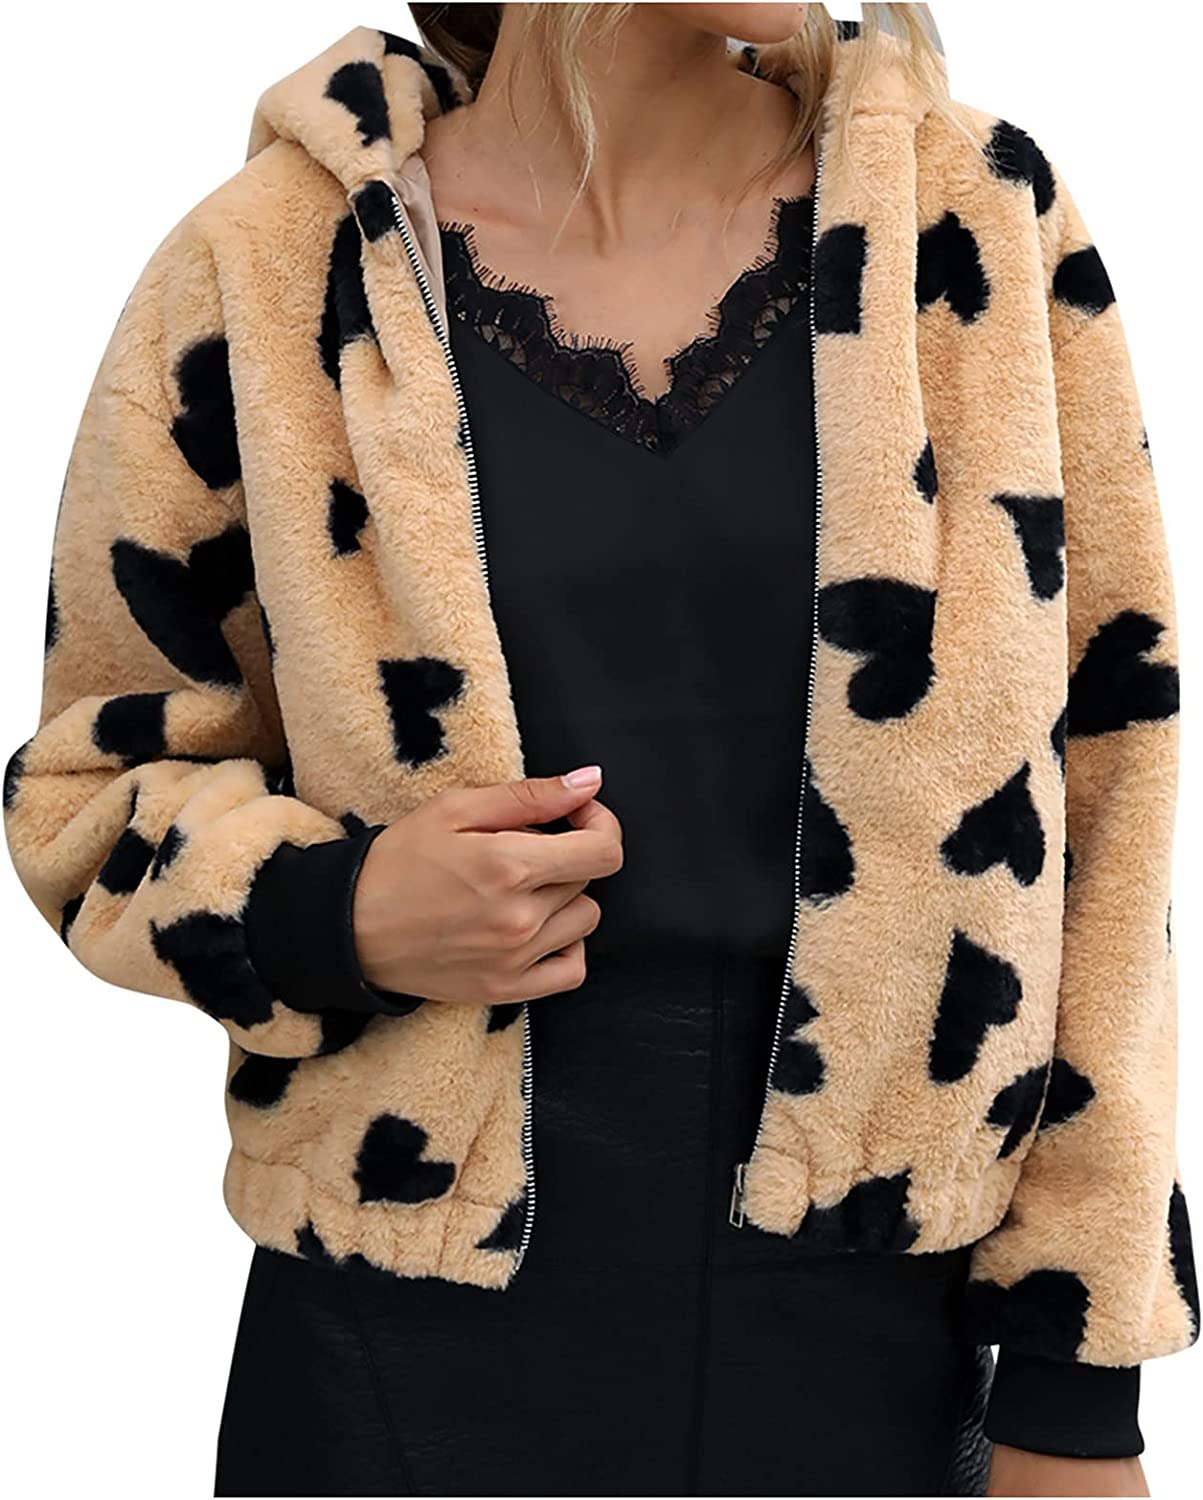 Winter Coats for Women Ladies Warm Faux Furry Coat Jacket Winter Hooded Hearted-Print Outerwear Long Sleeve Soft Tops